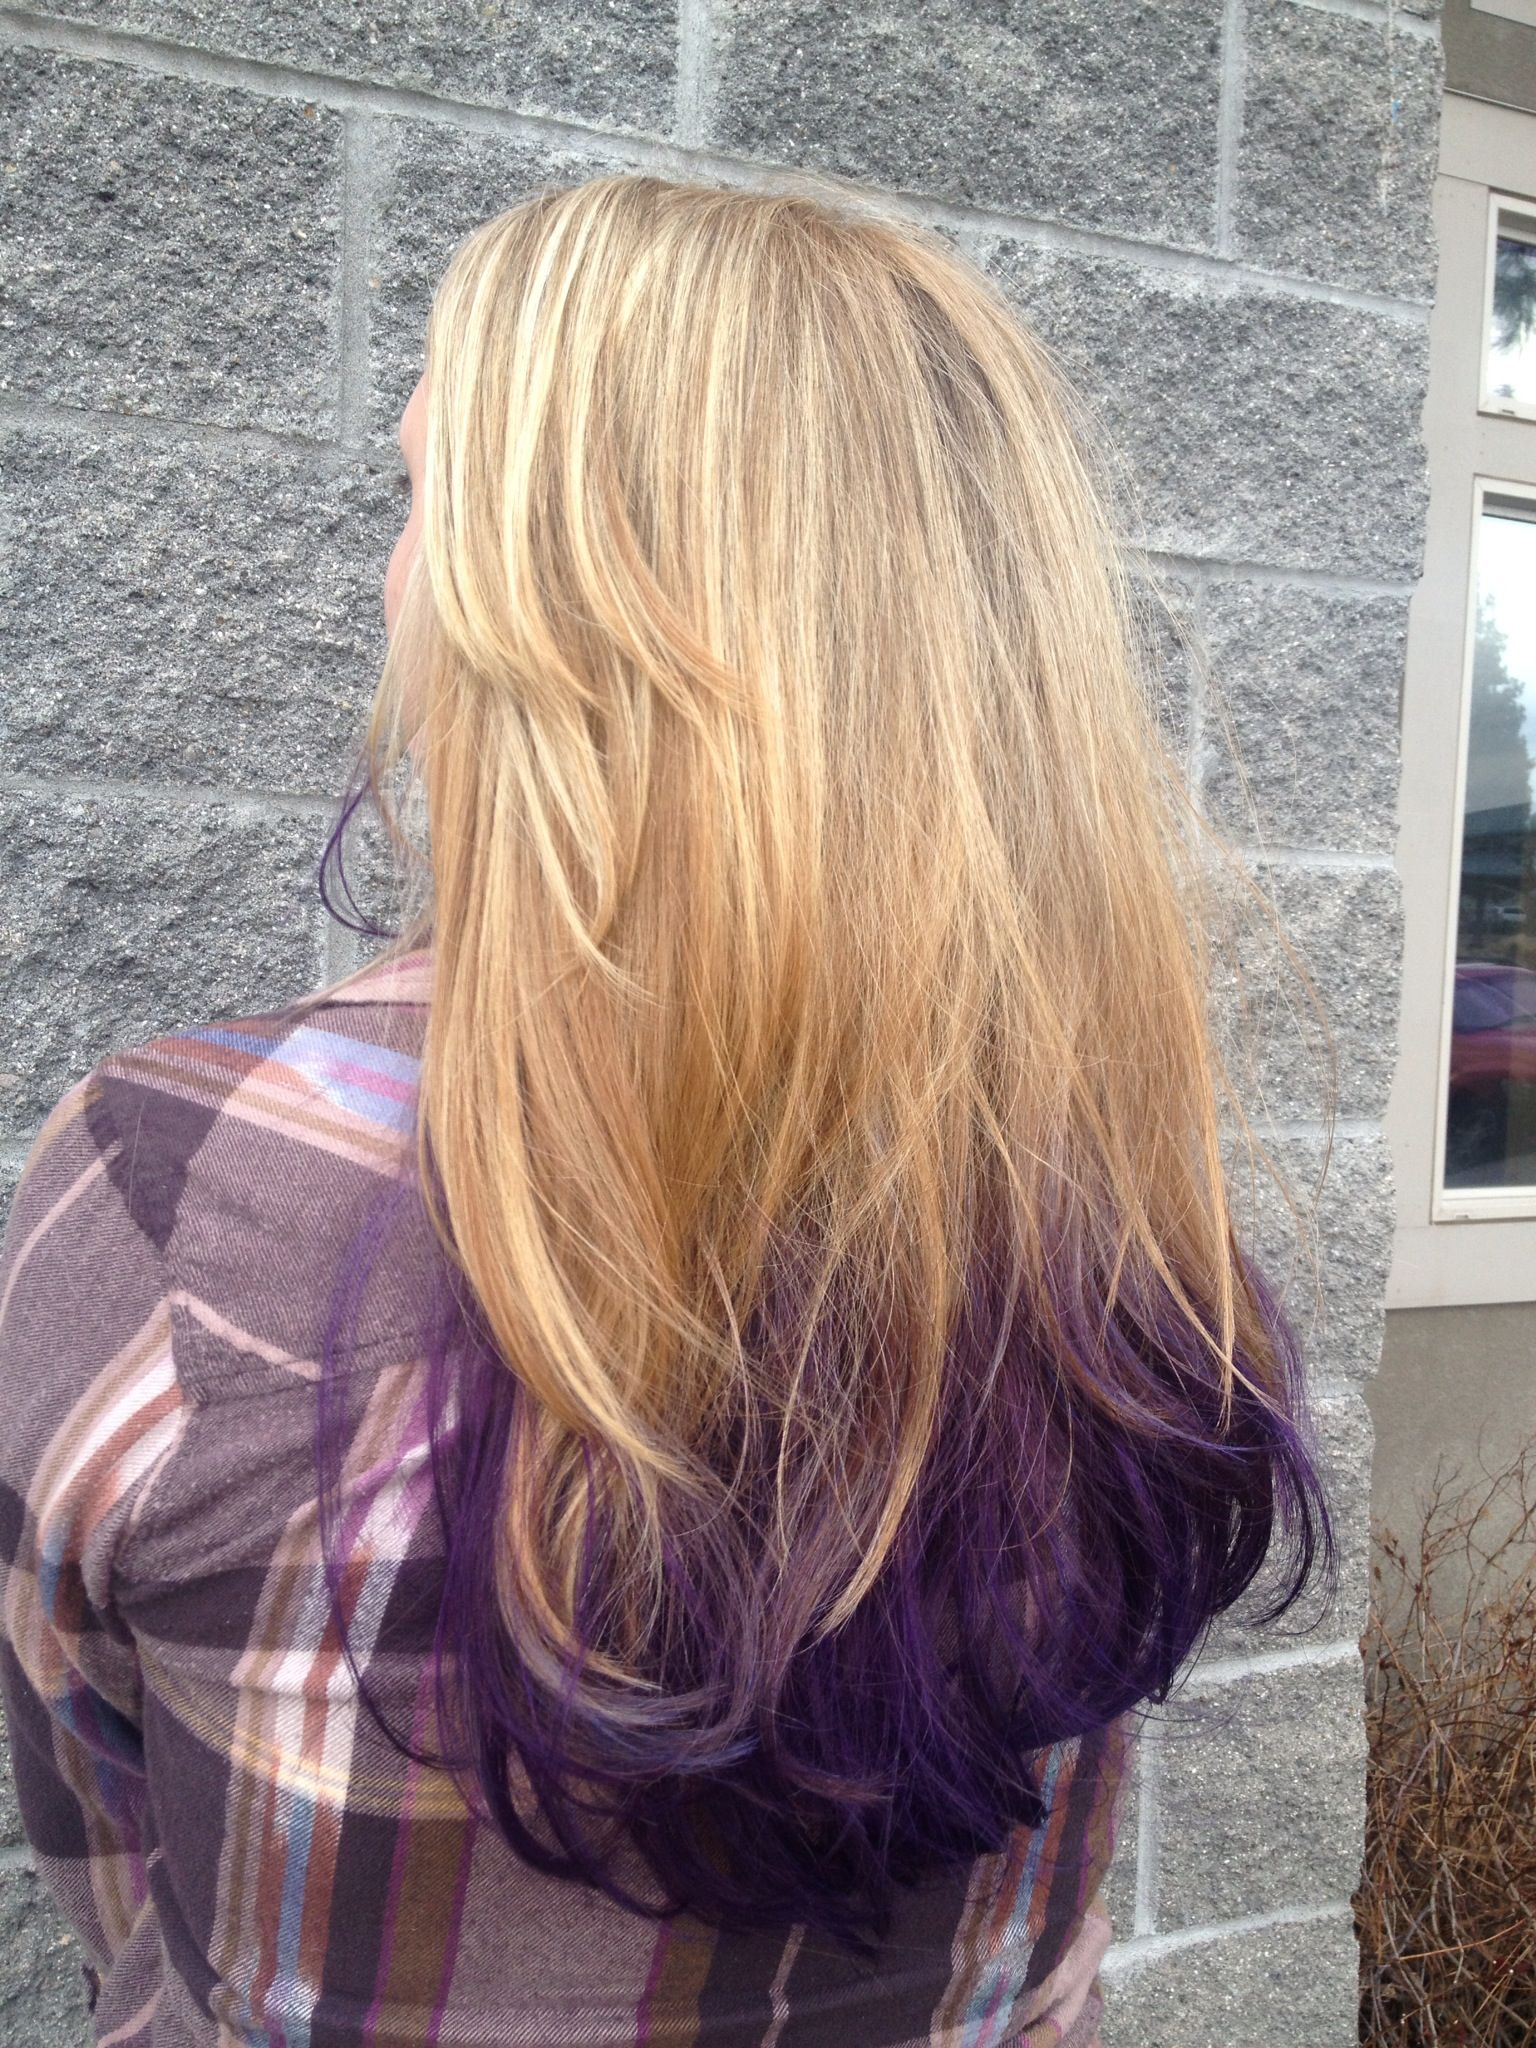 Blonde to purple ombré hairmakeup pinterest hair dyed hair